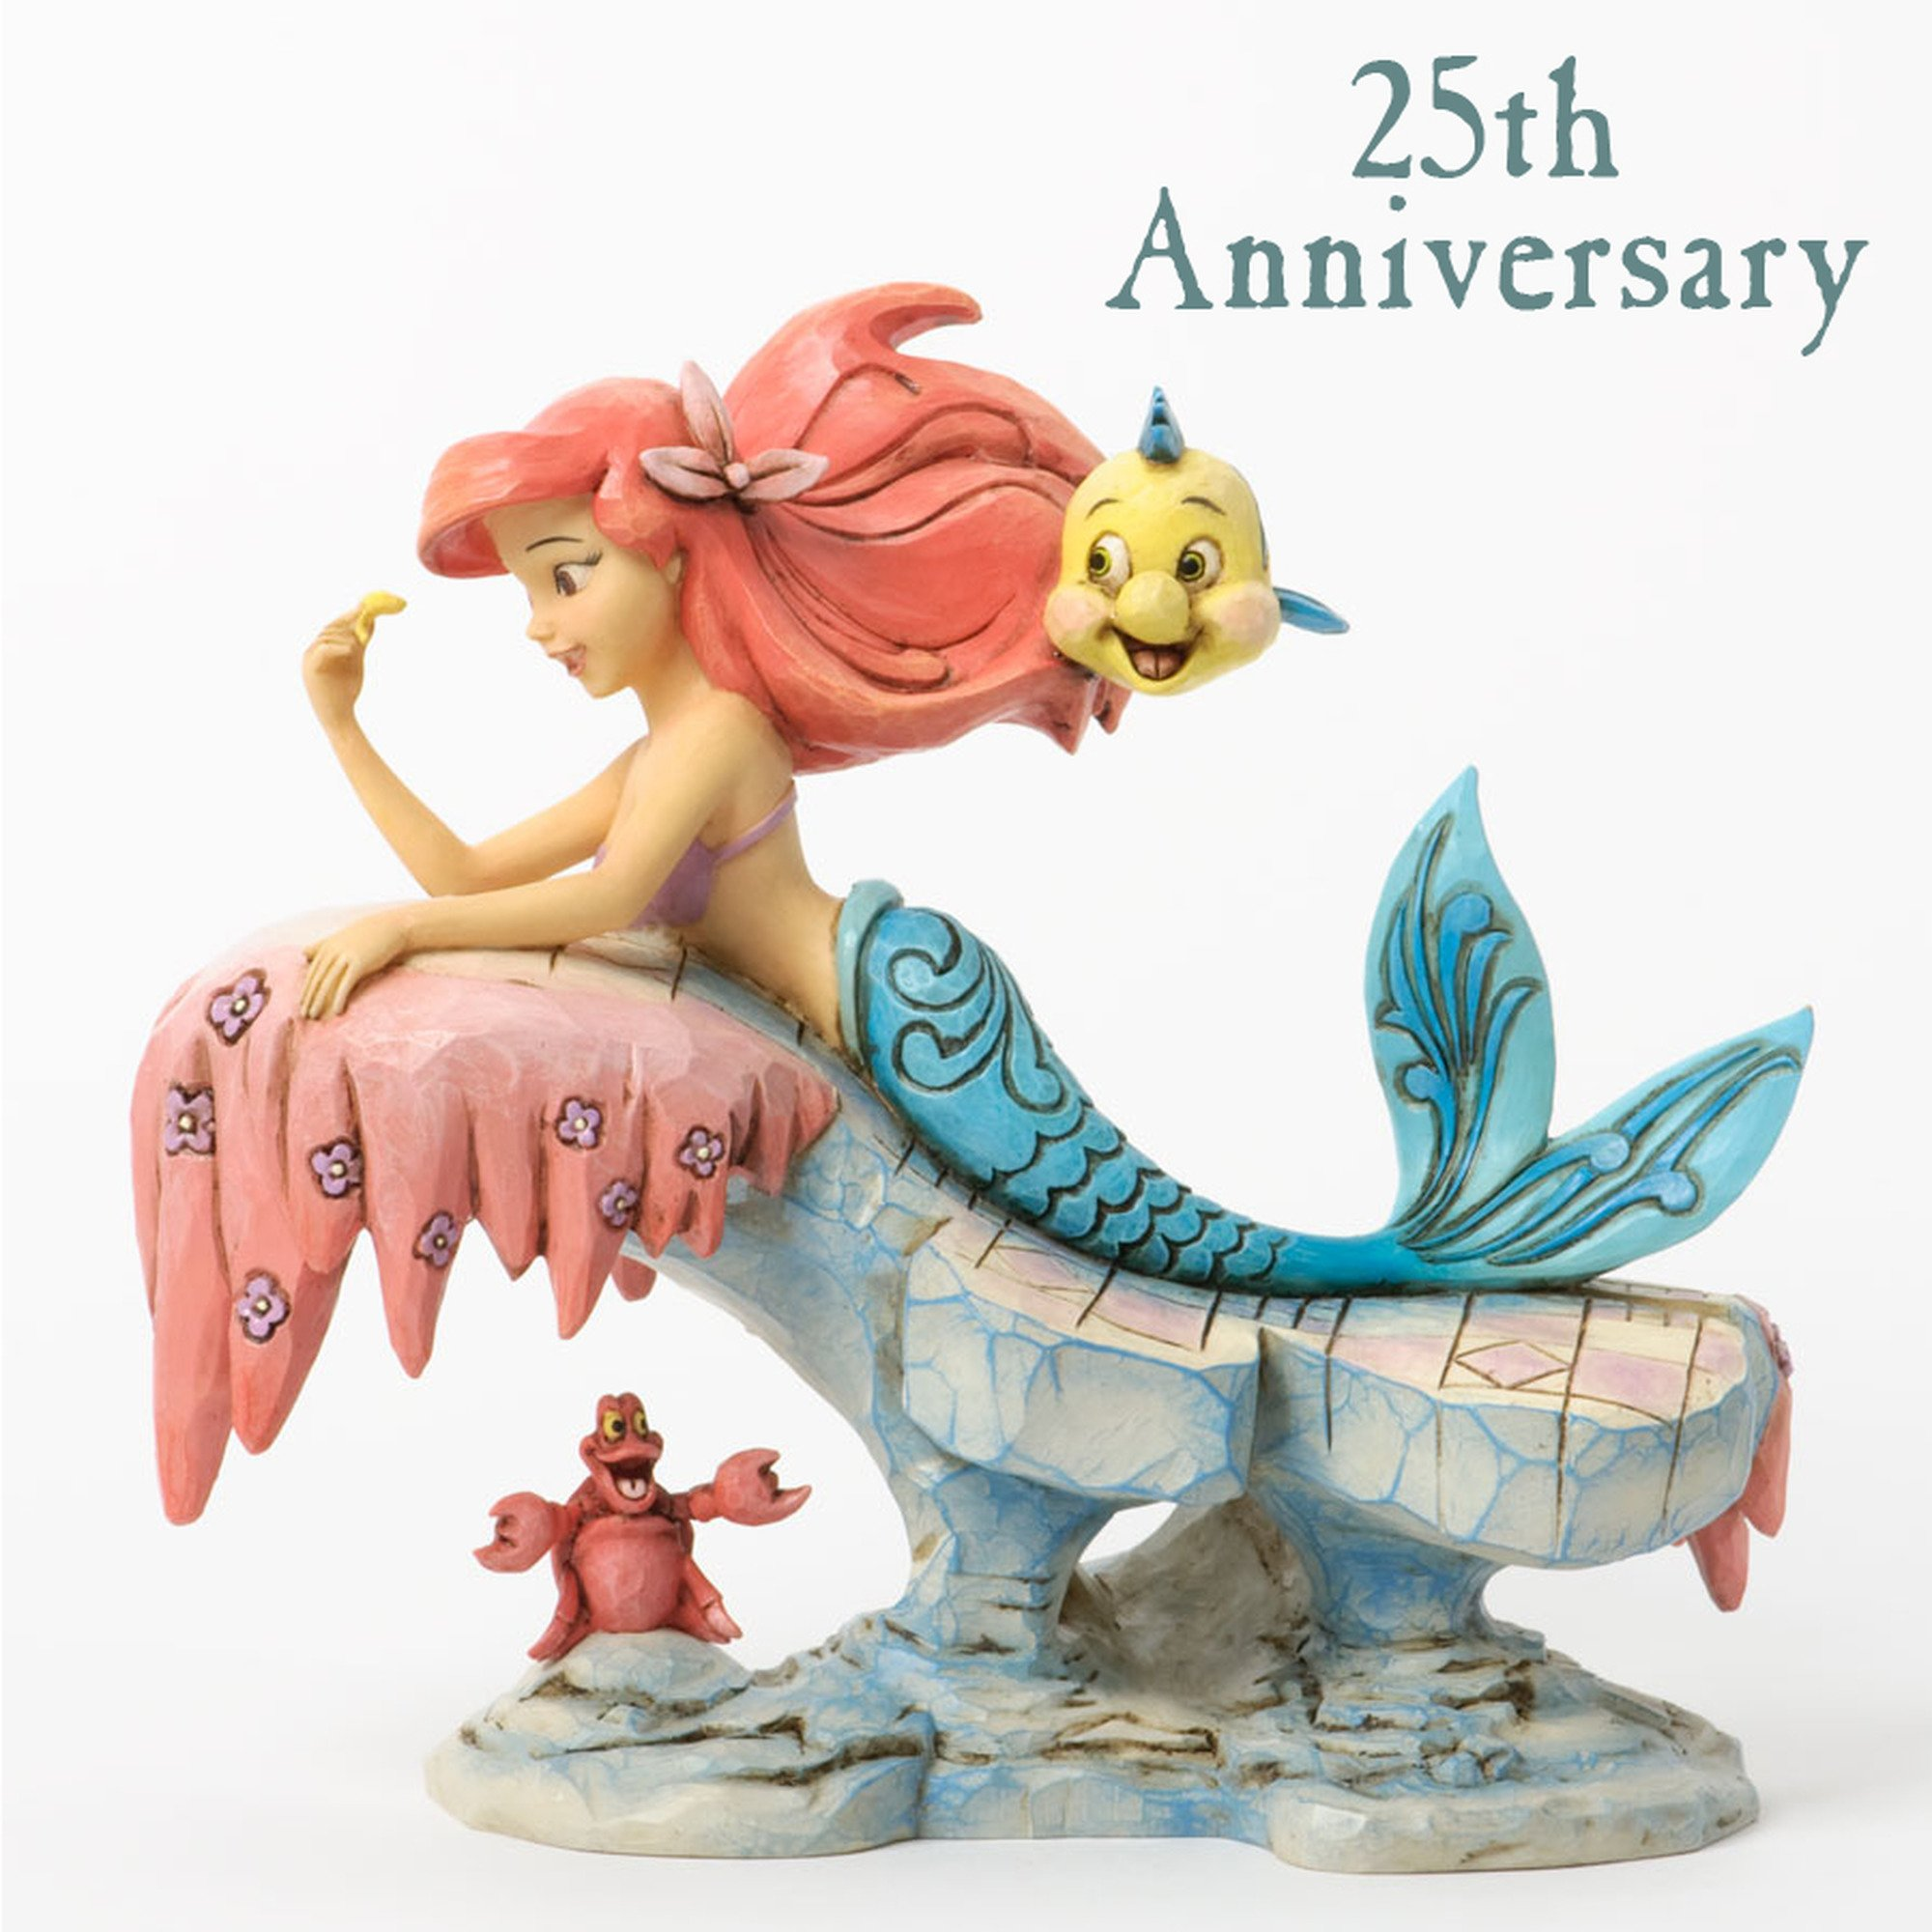 Disney Traditions by Jim Shore ''The Little Mermaid'' 25th Anniversary Stone Resin Figurine, 6.25'' by Jim Shore for Enesco